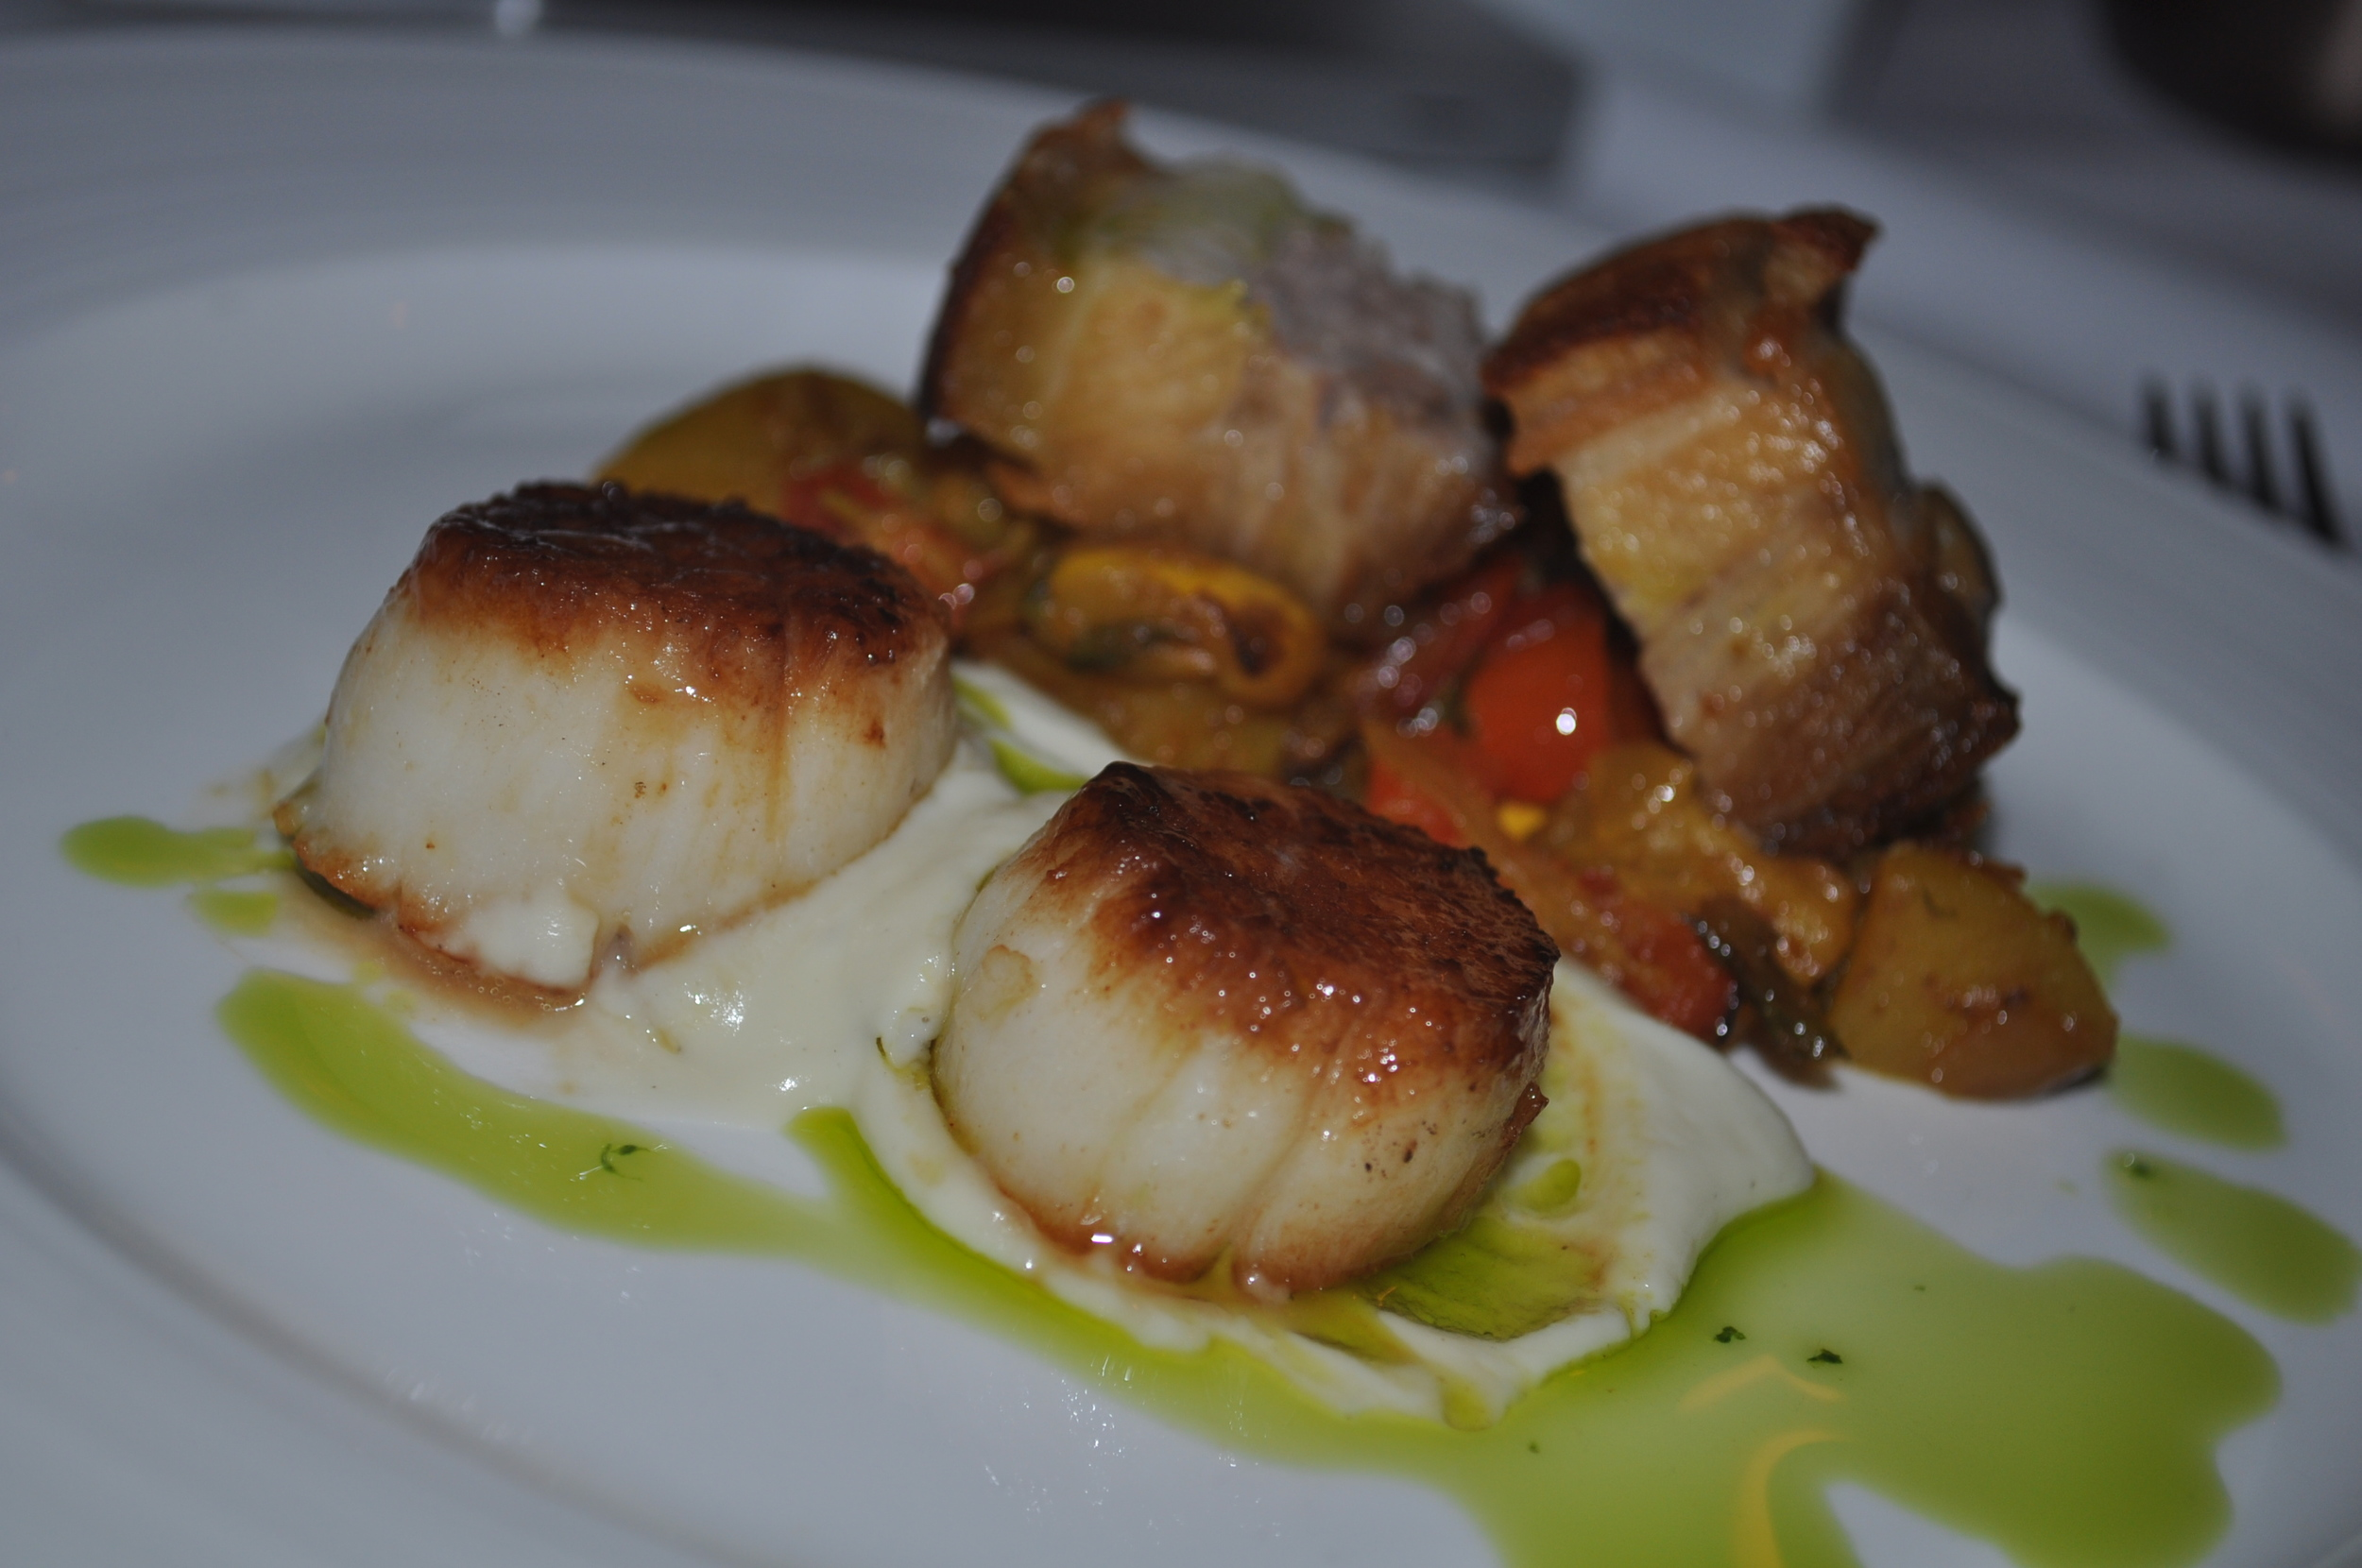 A Different Surf & Turf pairs scallops and pork belly.